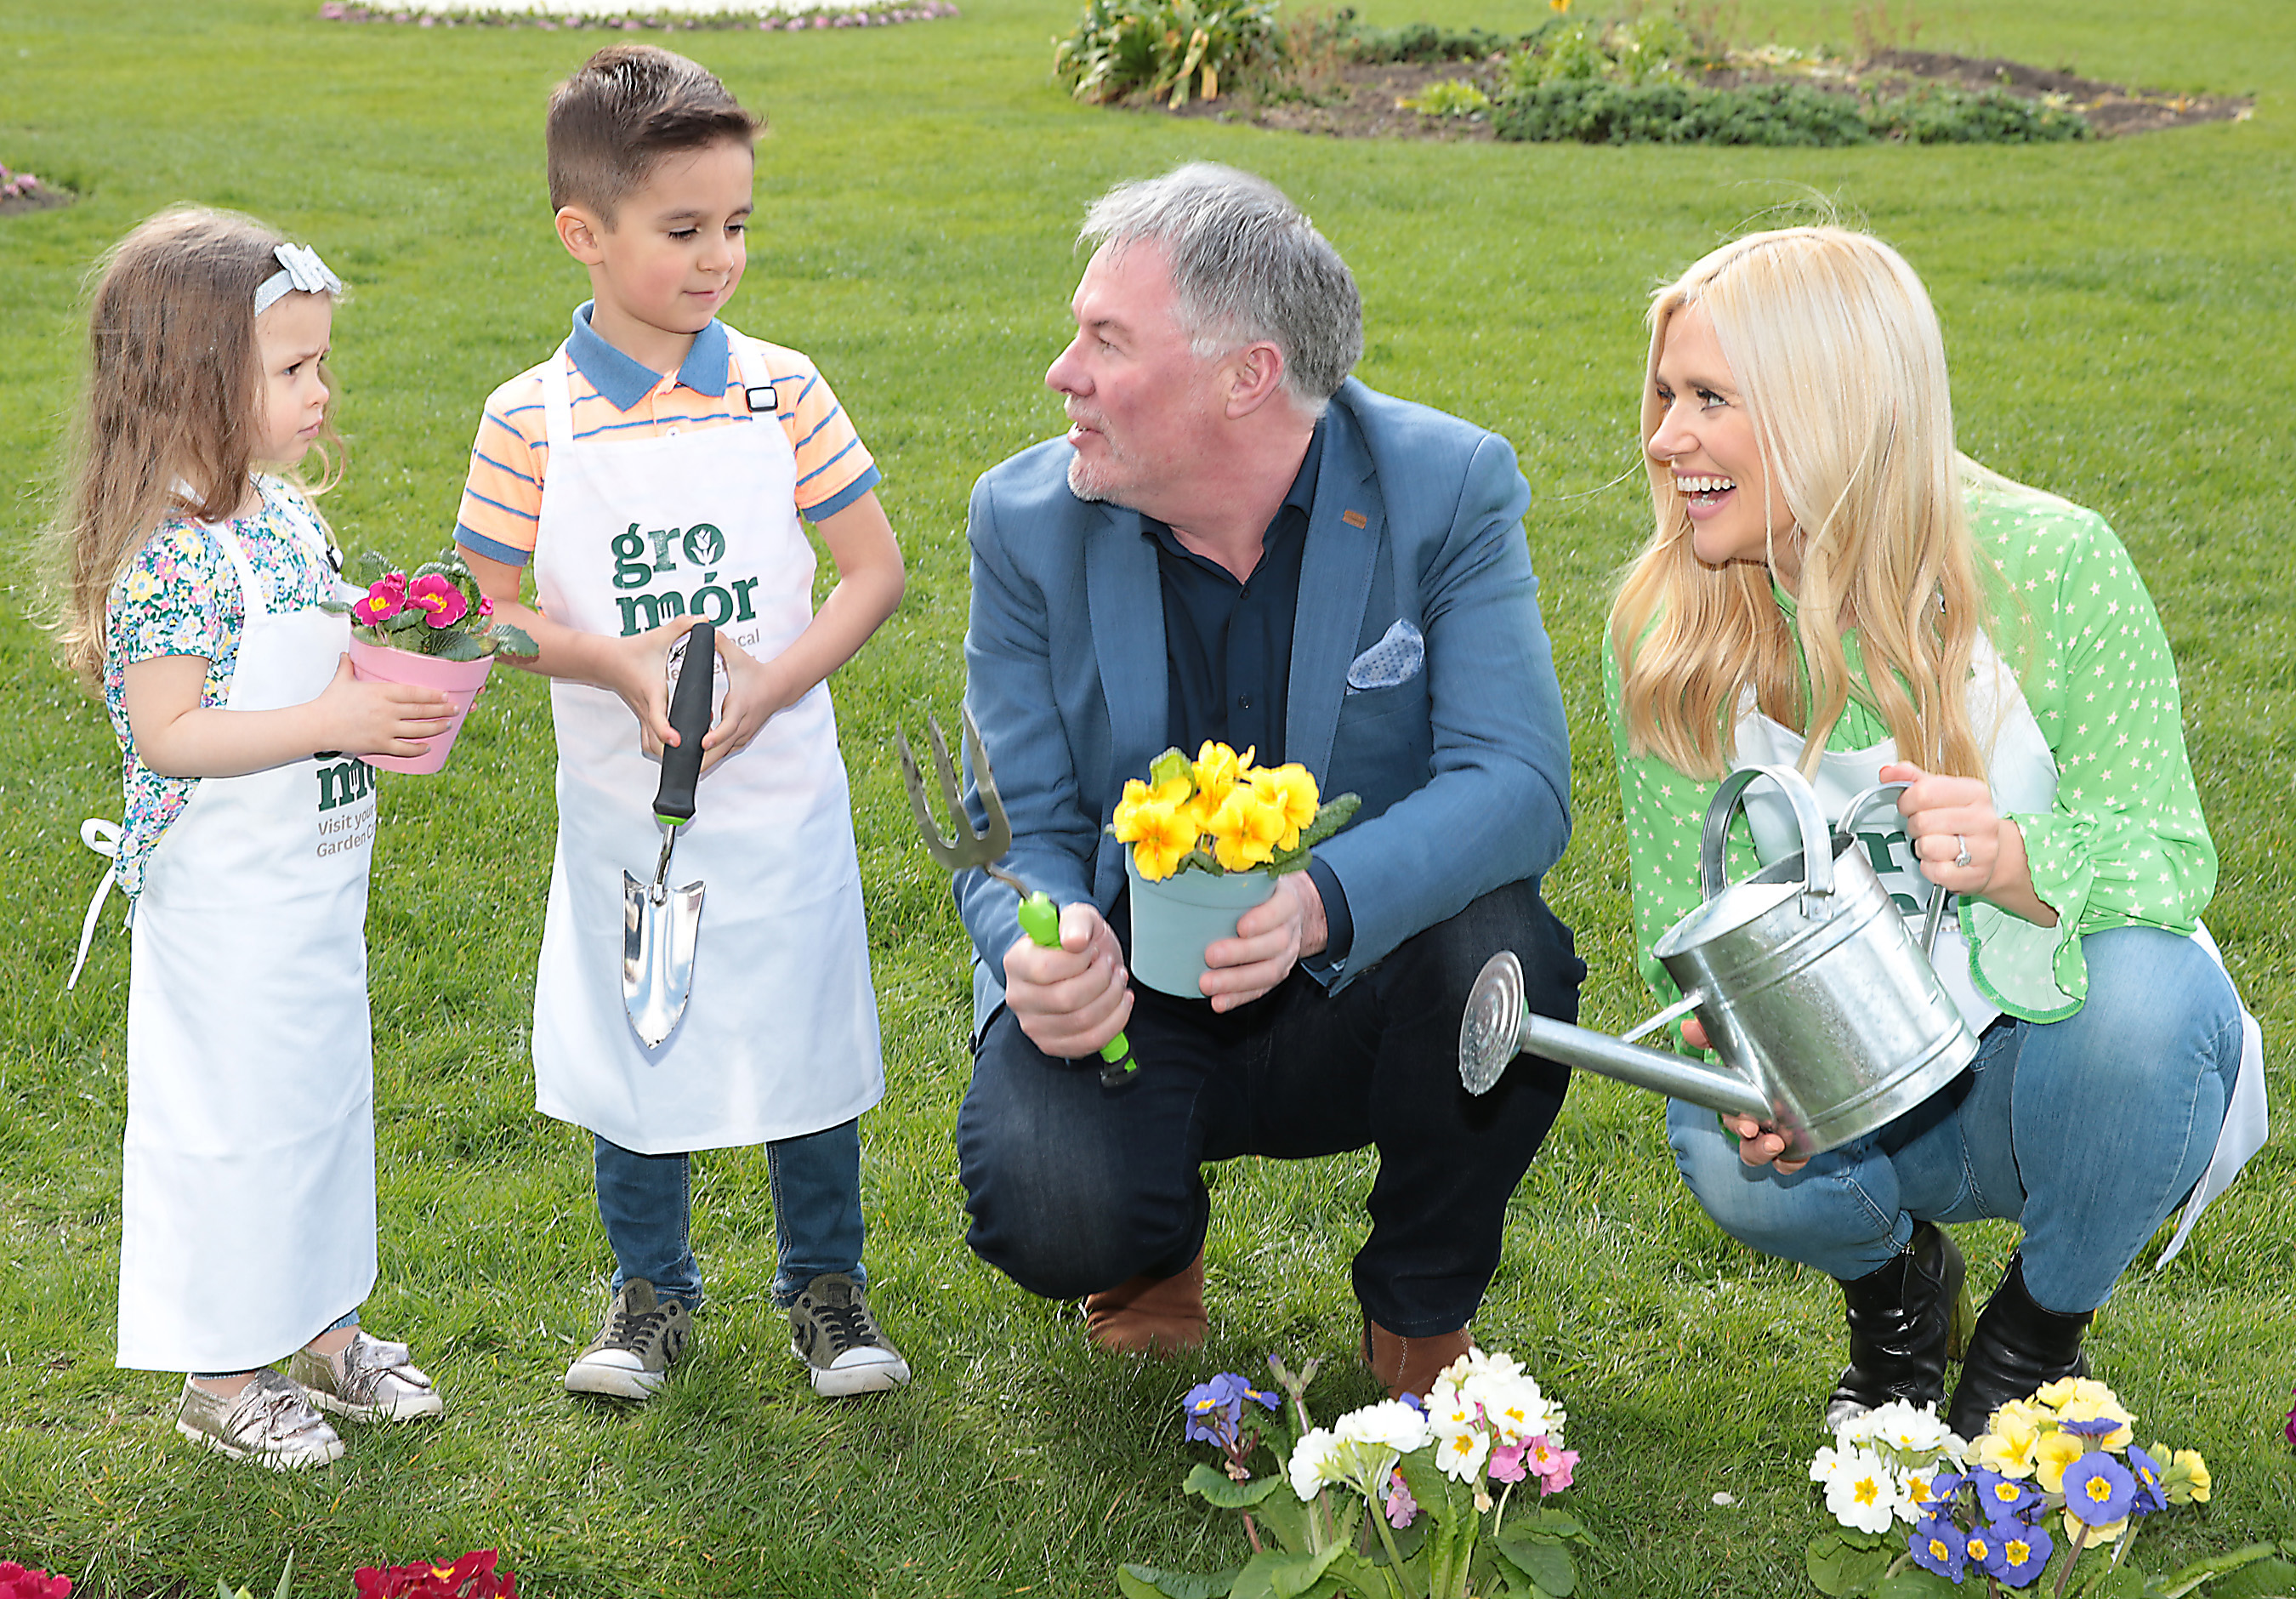 Amy Dempsey aged 4  and Gianluca Bux aged 5 with Super Garden judge and the face of Bloom Festival, Gary Graham and Karen Koster  as they celebrated the arrival of spring and the launch of GroMór 2019 - encouraging everyone to visit their local garden centres and nurseries, buy Irish plants and get growing!        Pic Brian McEvoy No Repro fee for one use               GroMór is an initiative by Bord Bia in association with Retail Excellence Ireland, promoting its 62 local garden centres and nurseries located across the country. These centres have an extensive selection of plants along with qualified staff, who are available to offer free expert advice to people in all age groups from novices and new homeowners to experienced gardeners.    Discover your green fingers simply grab a trowel and uncover the beauty and mystery of the garden.  GroMór 2019 has two key themes that will focus on the seasonal plants with 'Garden Colour' across April and May and then 'Container Garden' from June onwards. April is the month when spring really starts to arrive and with the advice of GroMór ambassador Gary Graham, comes the opportunity to create your own super garden this summer!  For anyone looking for advice or easy to follow guides and videos on how to grow flowers, plants, herbs, trees and vegetables or to find your local garden centre or nursery visit, www.GroMór.ie . GroMór 2019 is sponsored by Bord na Móna and Westland Horticulture. www.GroMór.ie